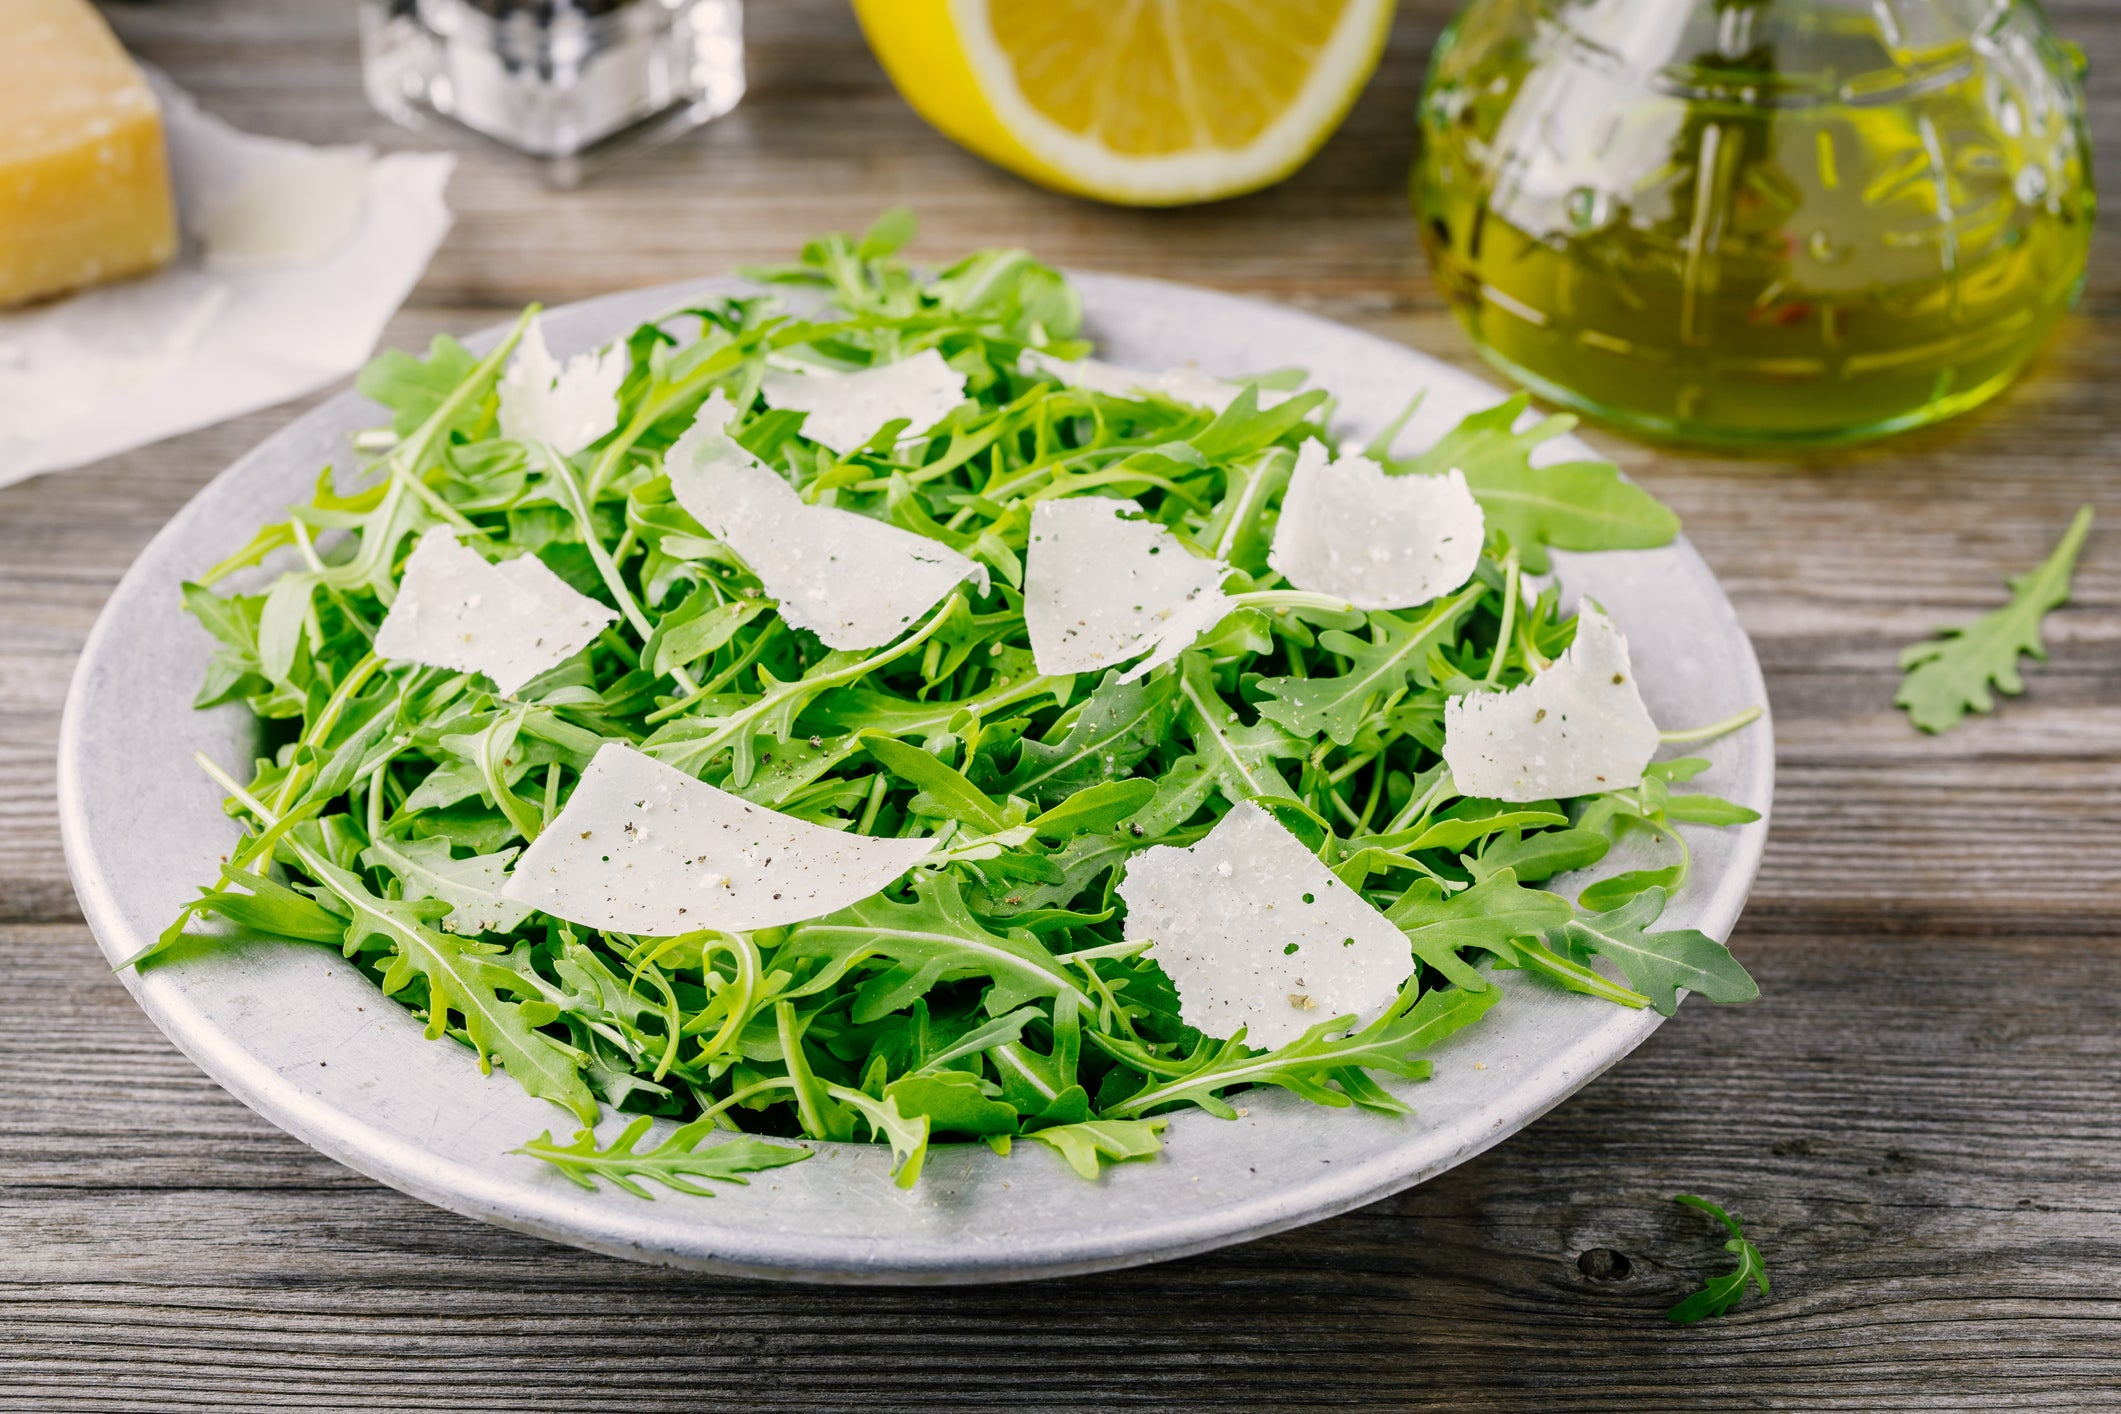 A bowl of arugula with parmesan shavings.